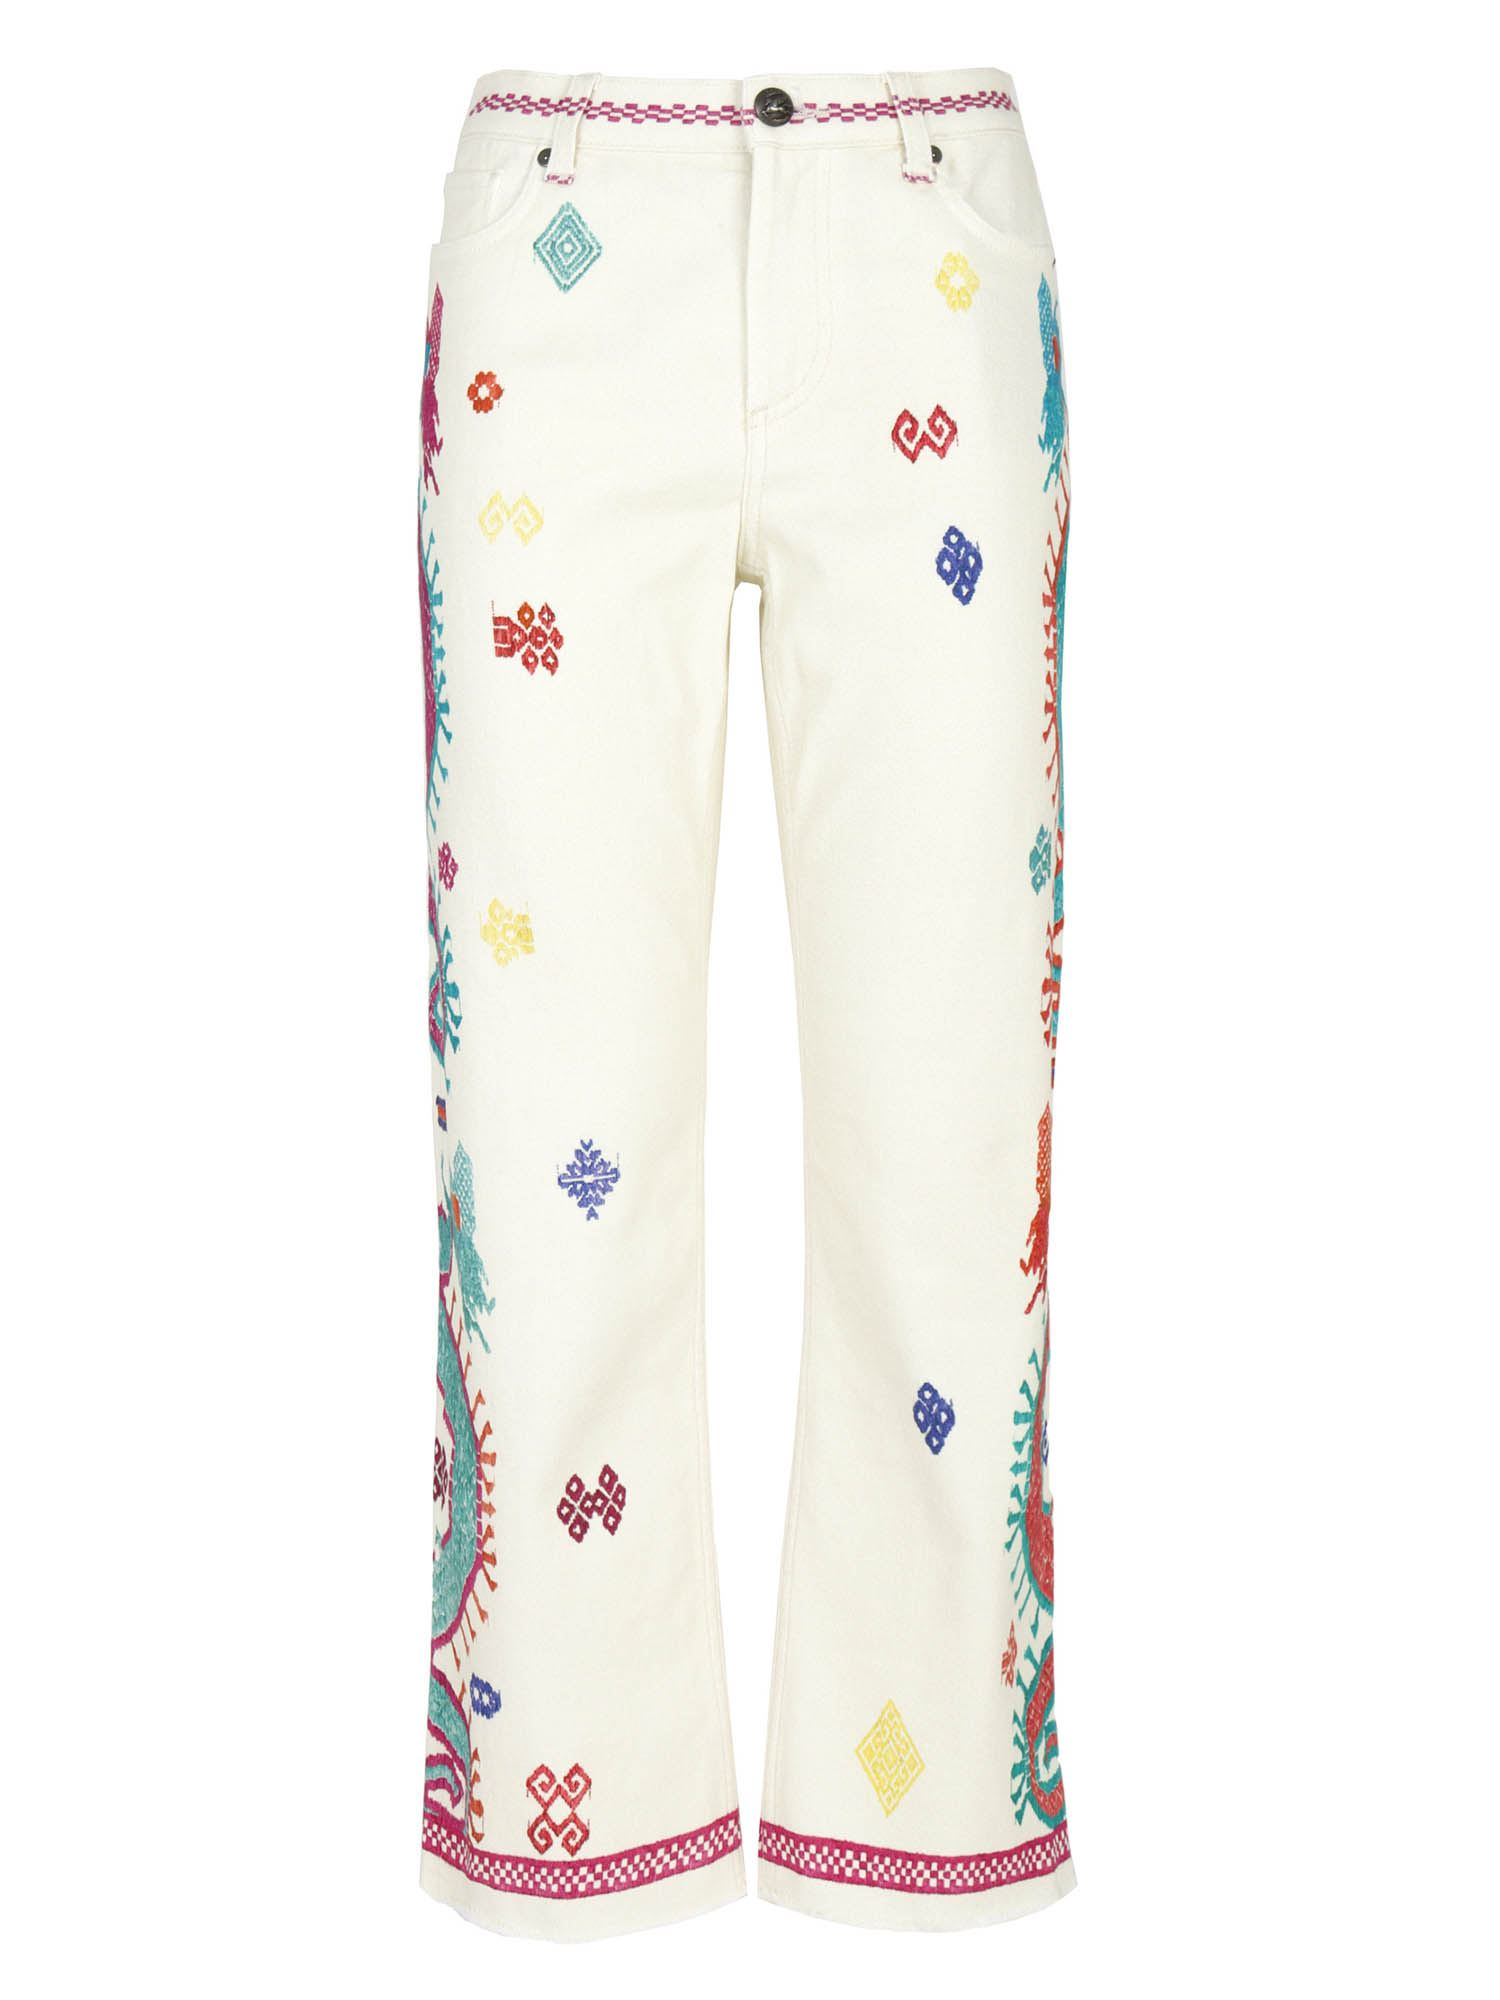 Etro EMBROIDERY EFFECT MOTIF 5-POCKET JEANS IN WHITE